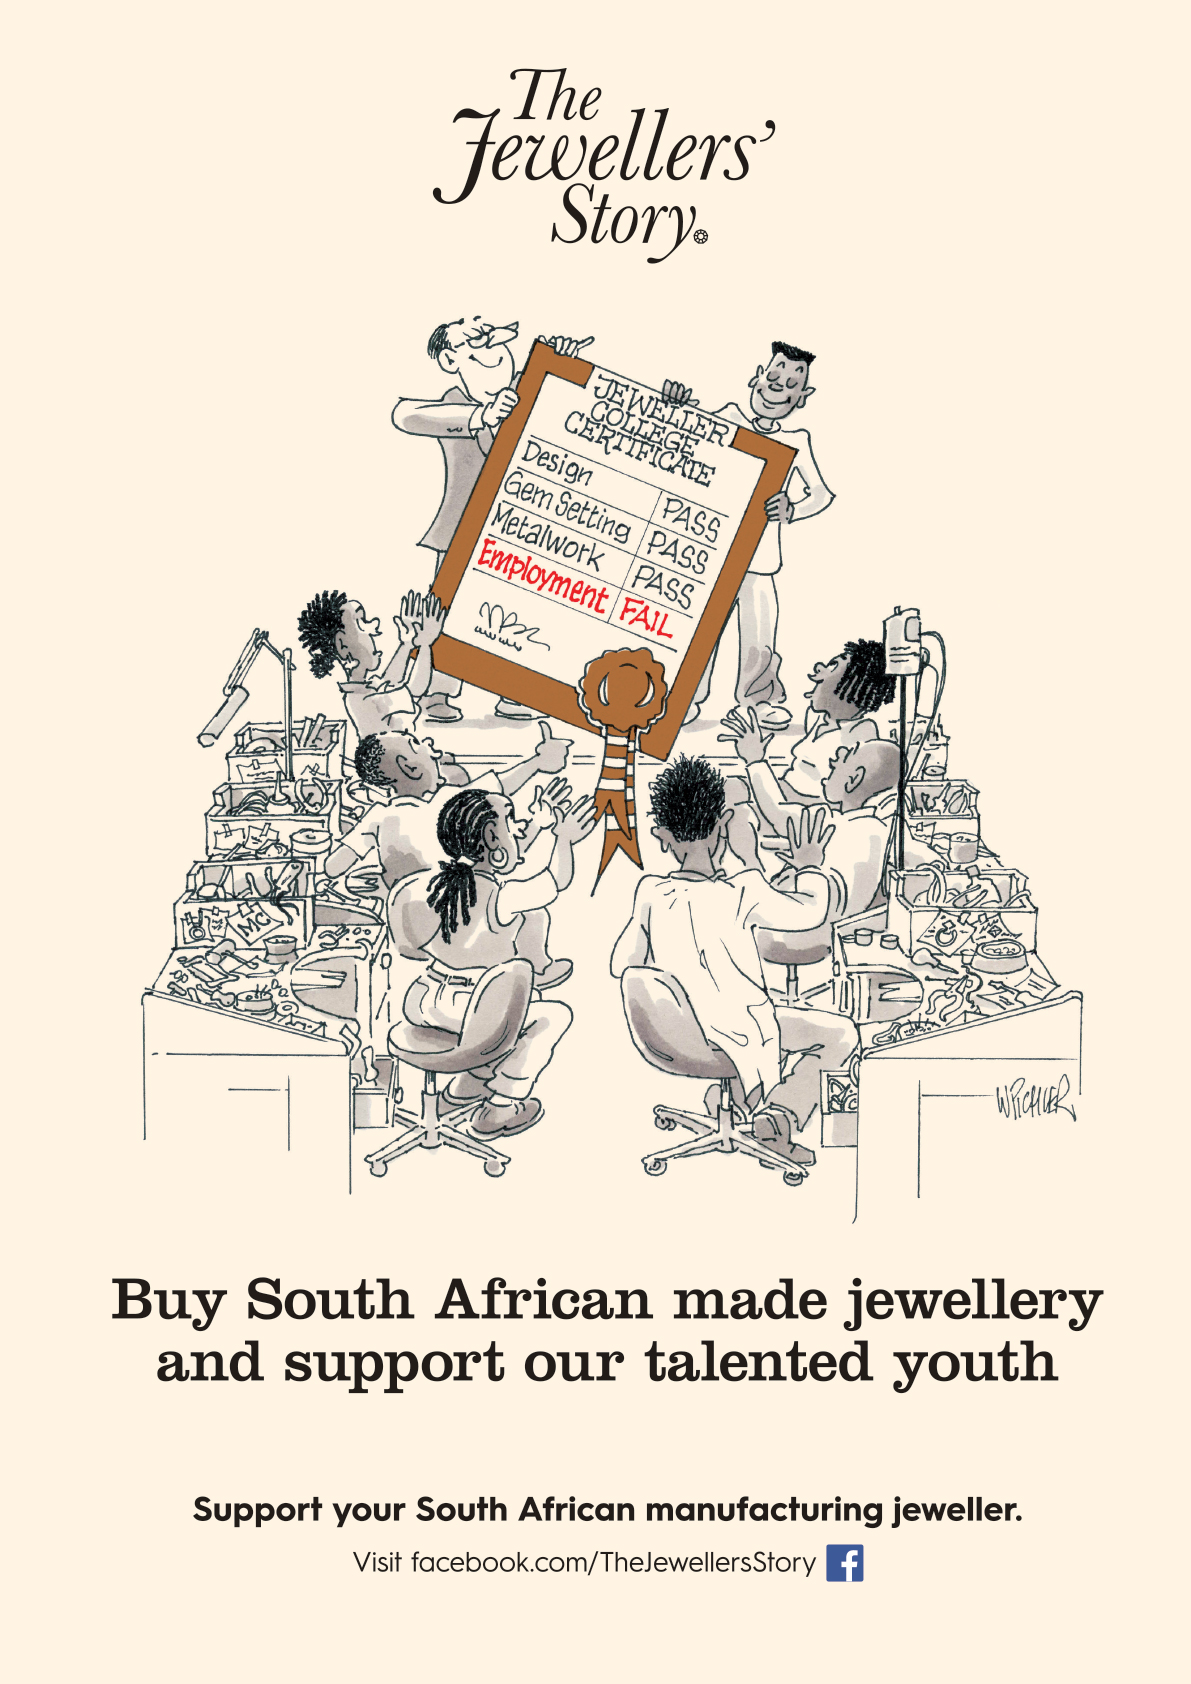 Support local jewellers and our talented youths